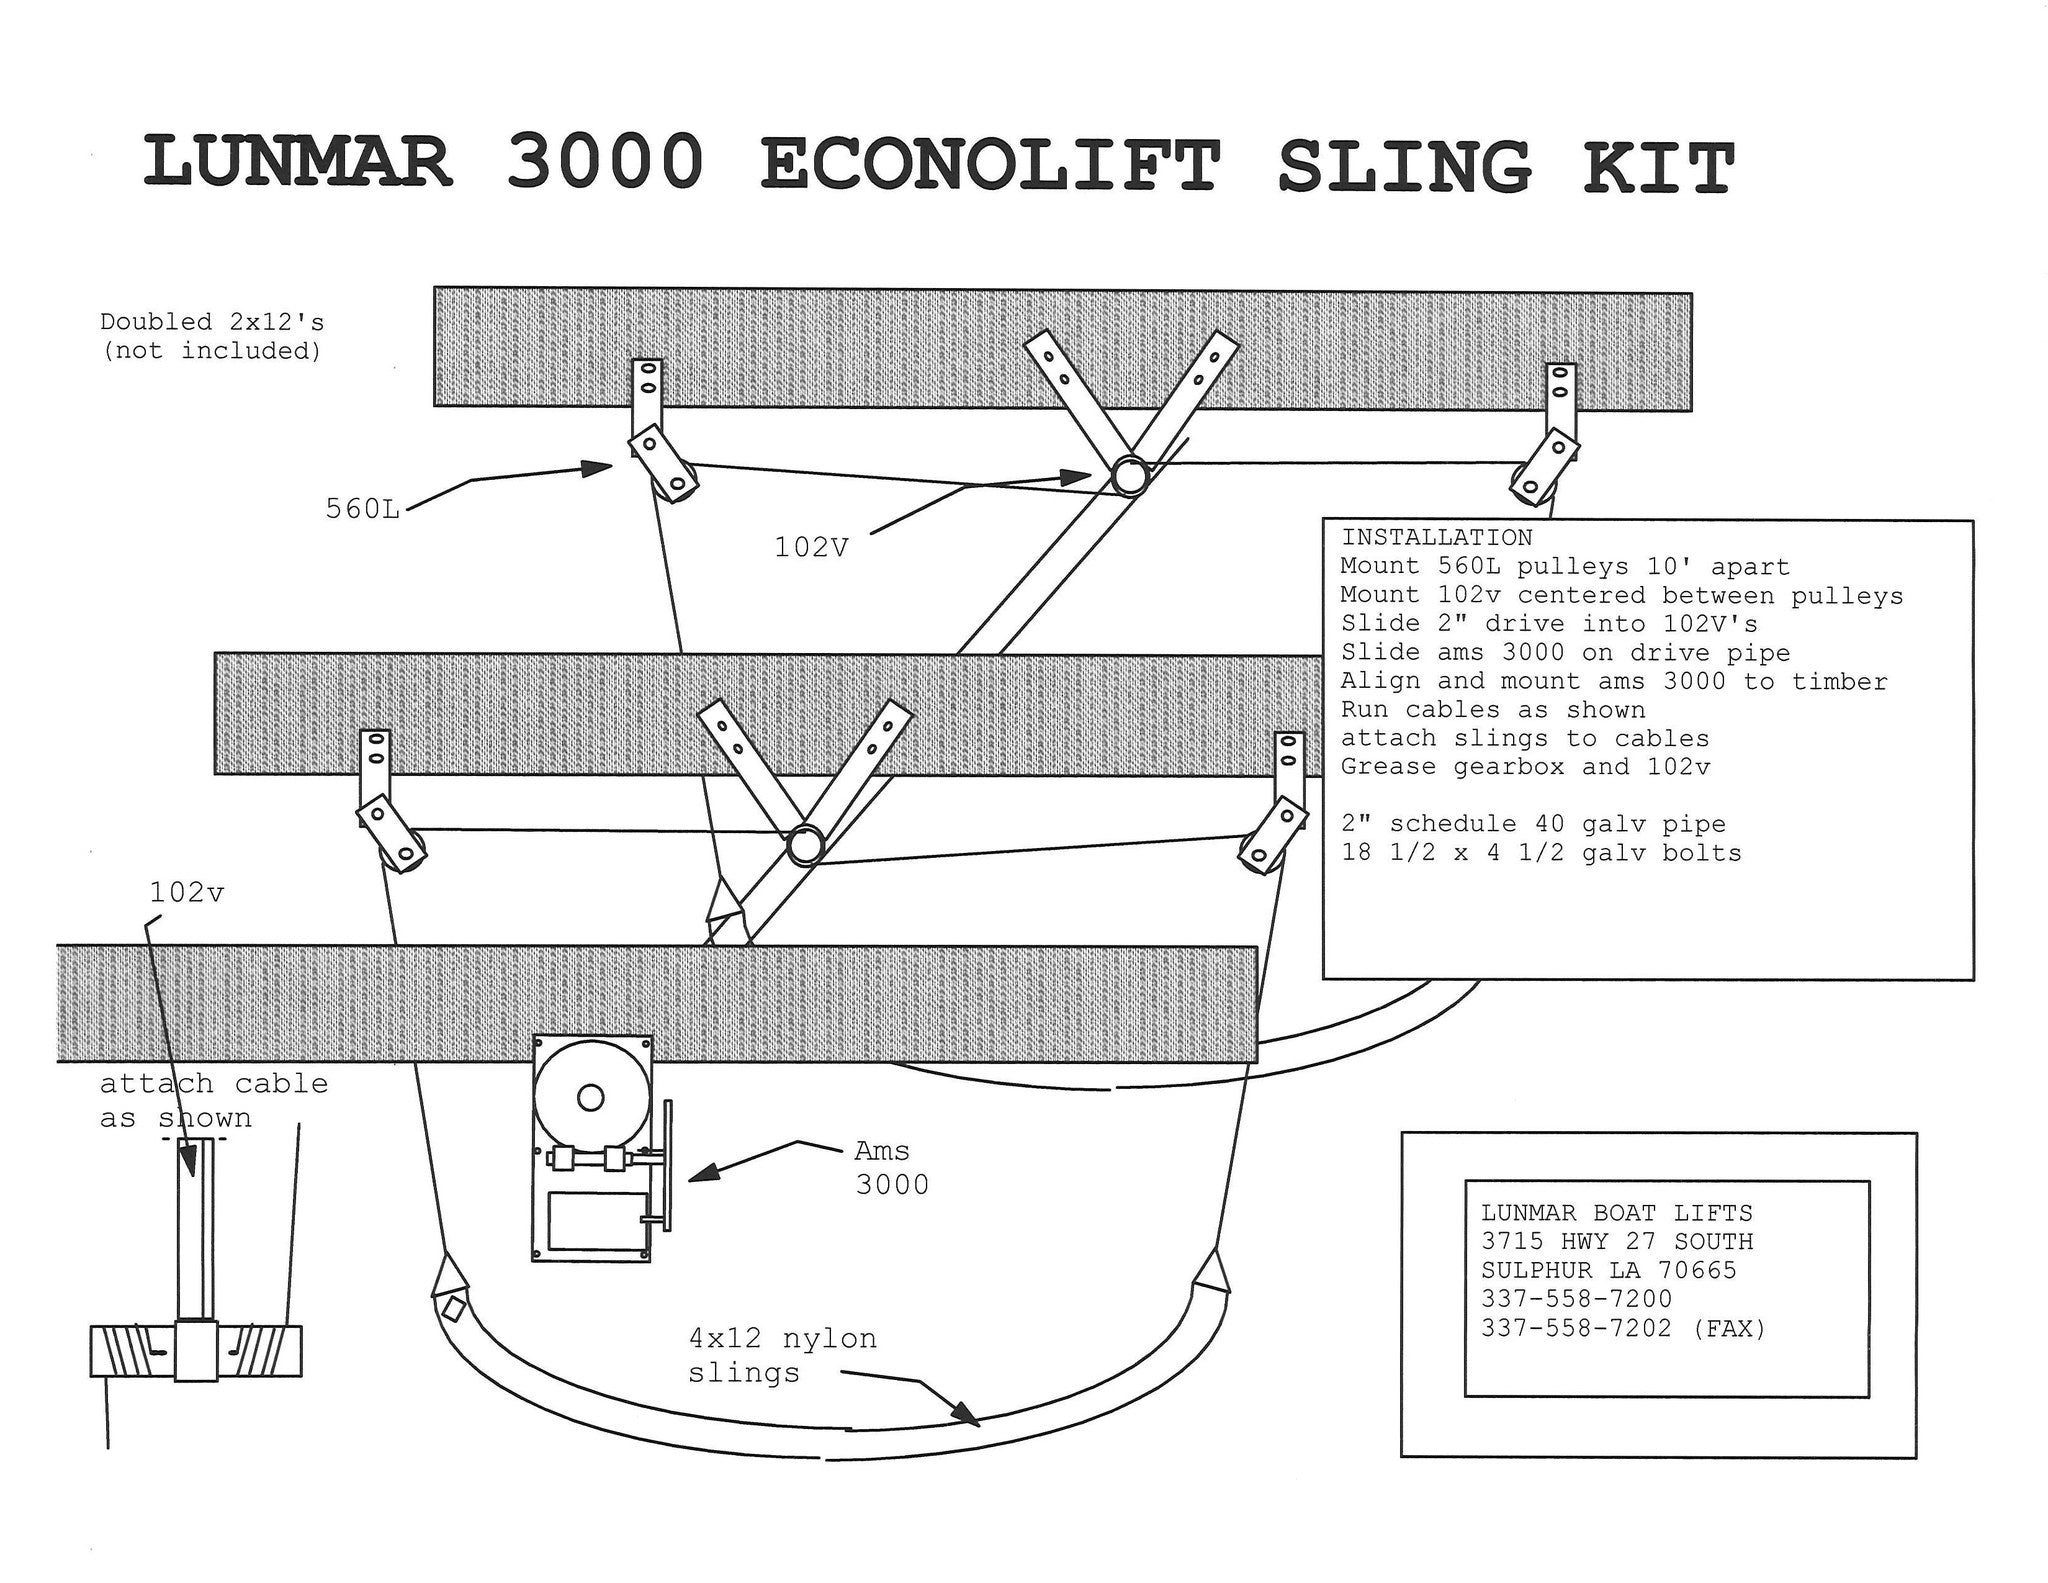 3000_Econo_Installation_Diagram boat lift wiring dolgular com boat lift wiring diagram at crackthecode.co